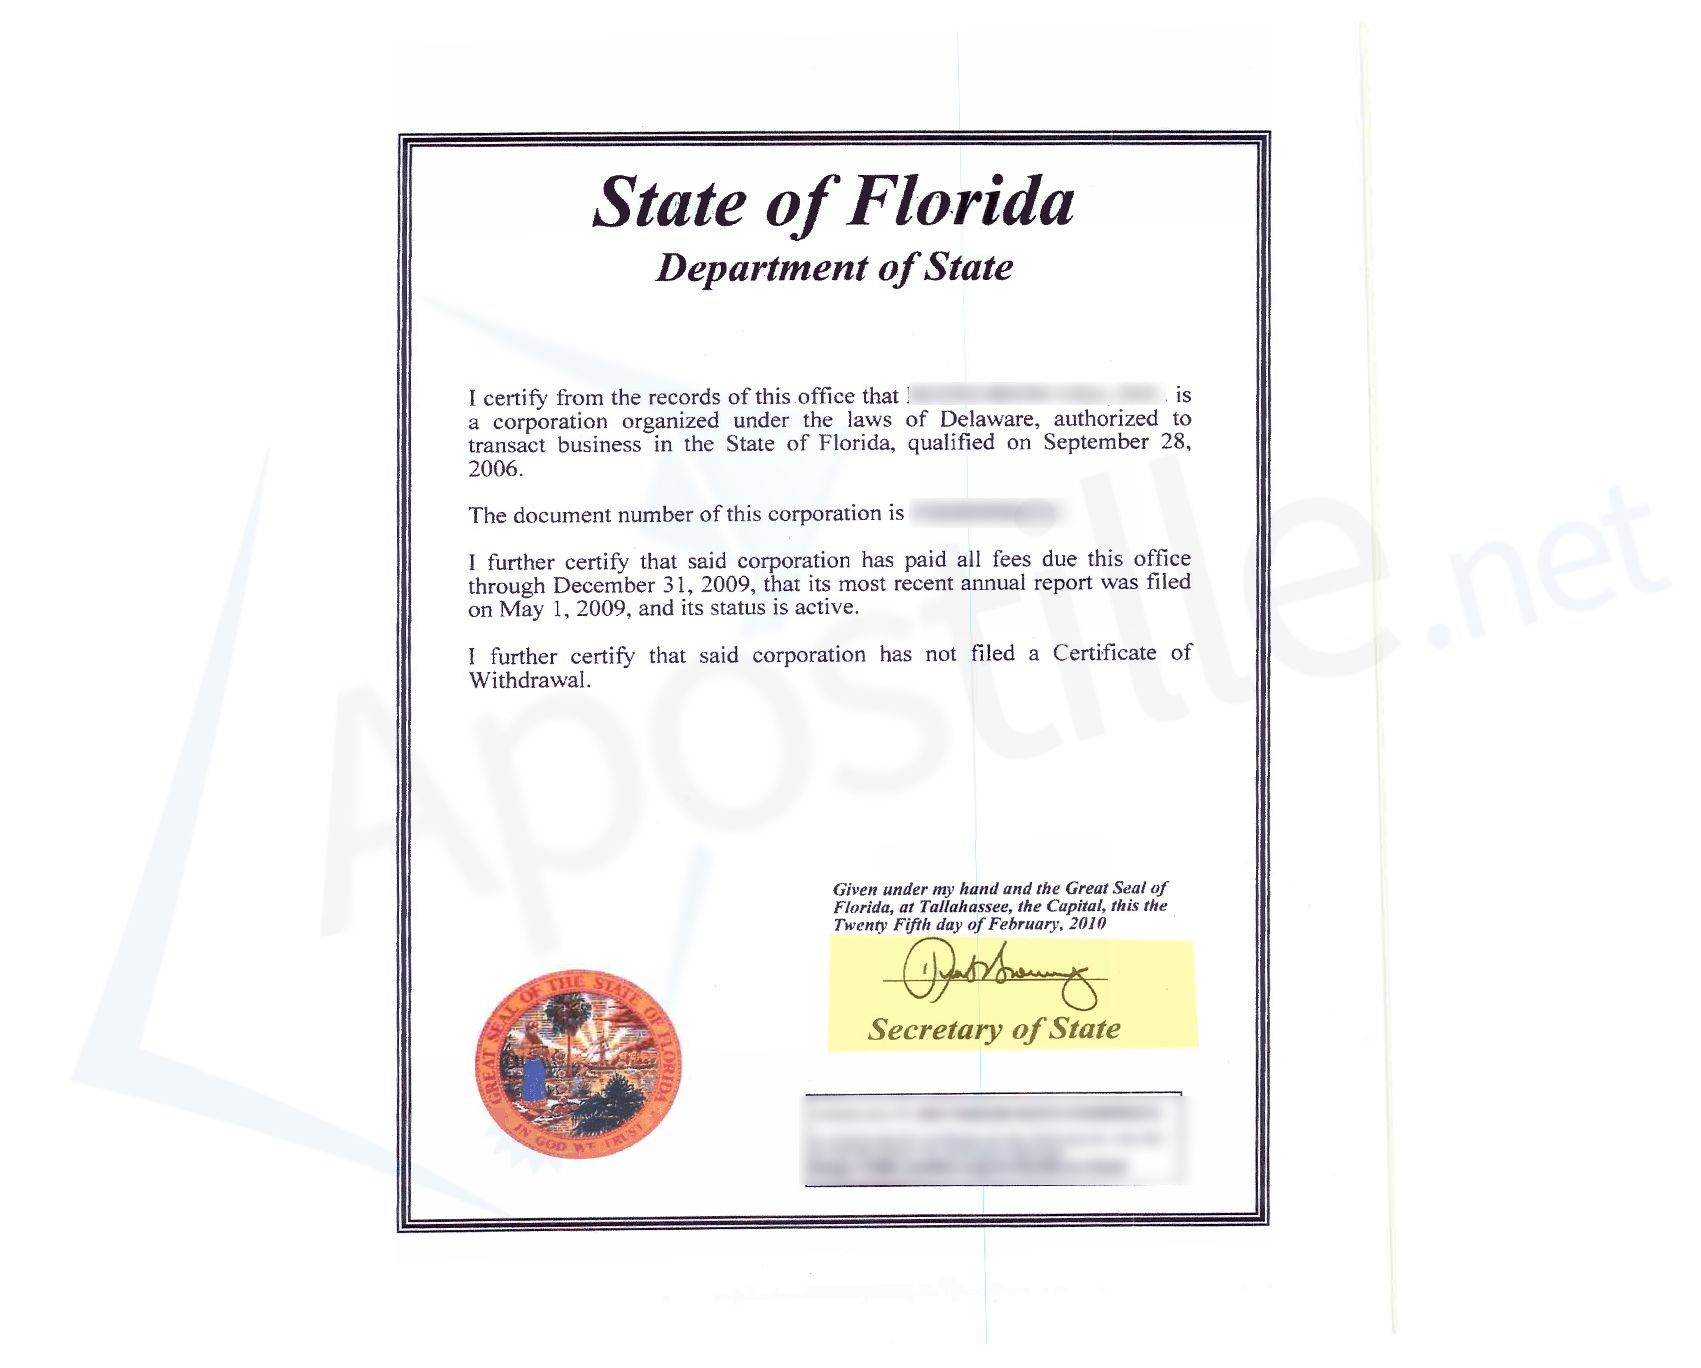 State of florida certificate of good standing state of florida state of florida certificate of good standing xflitez Image collections